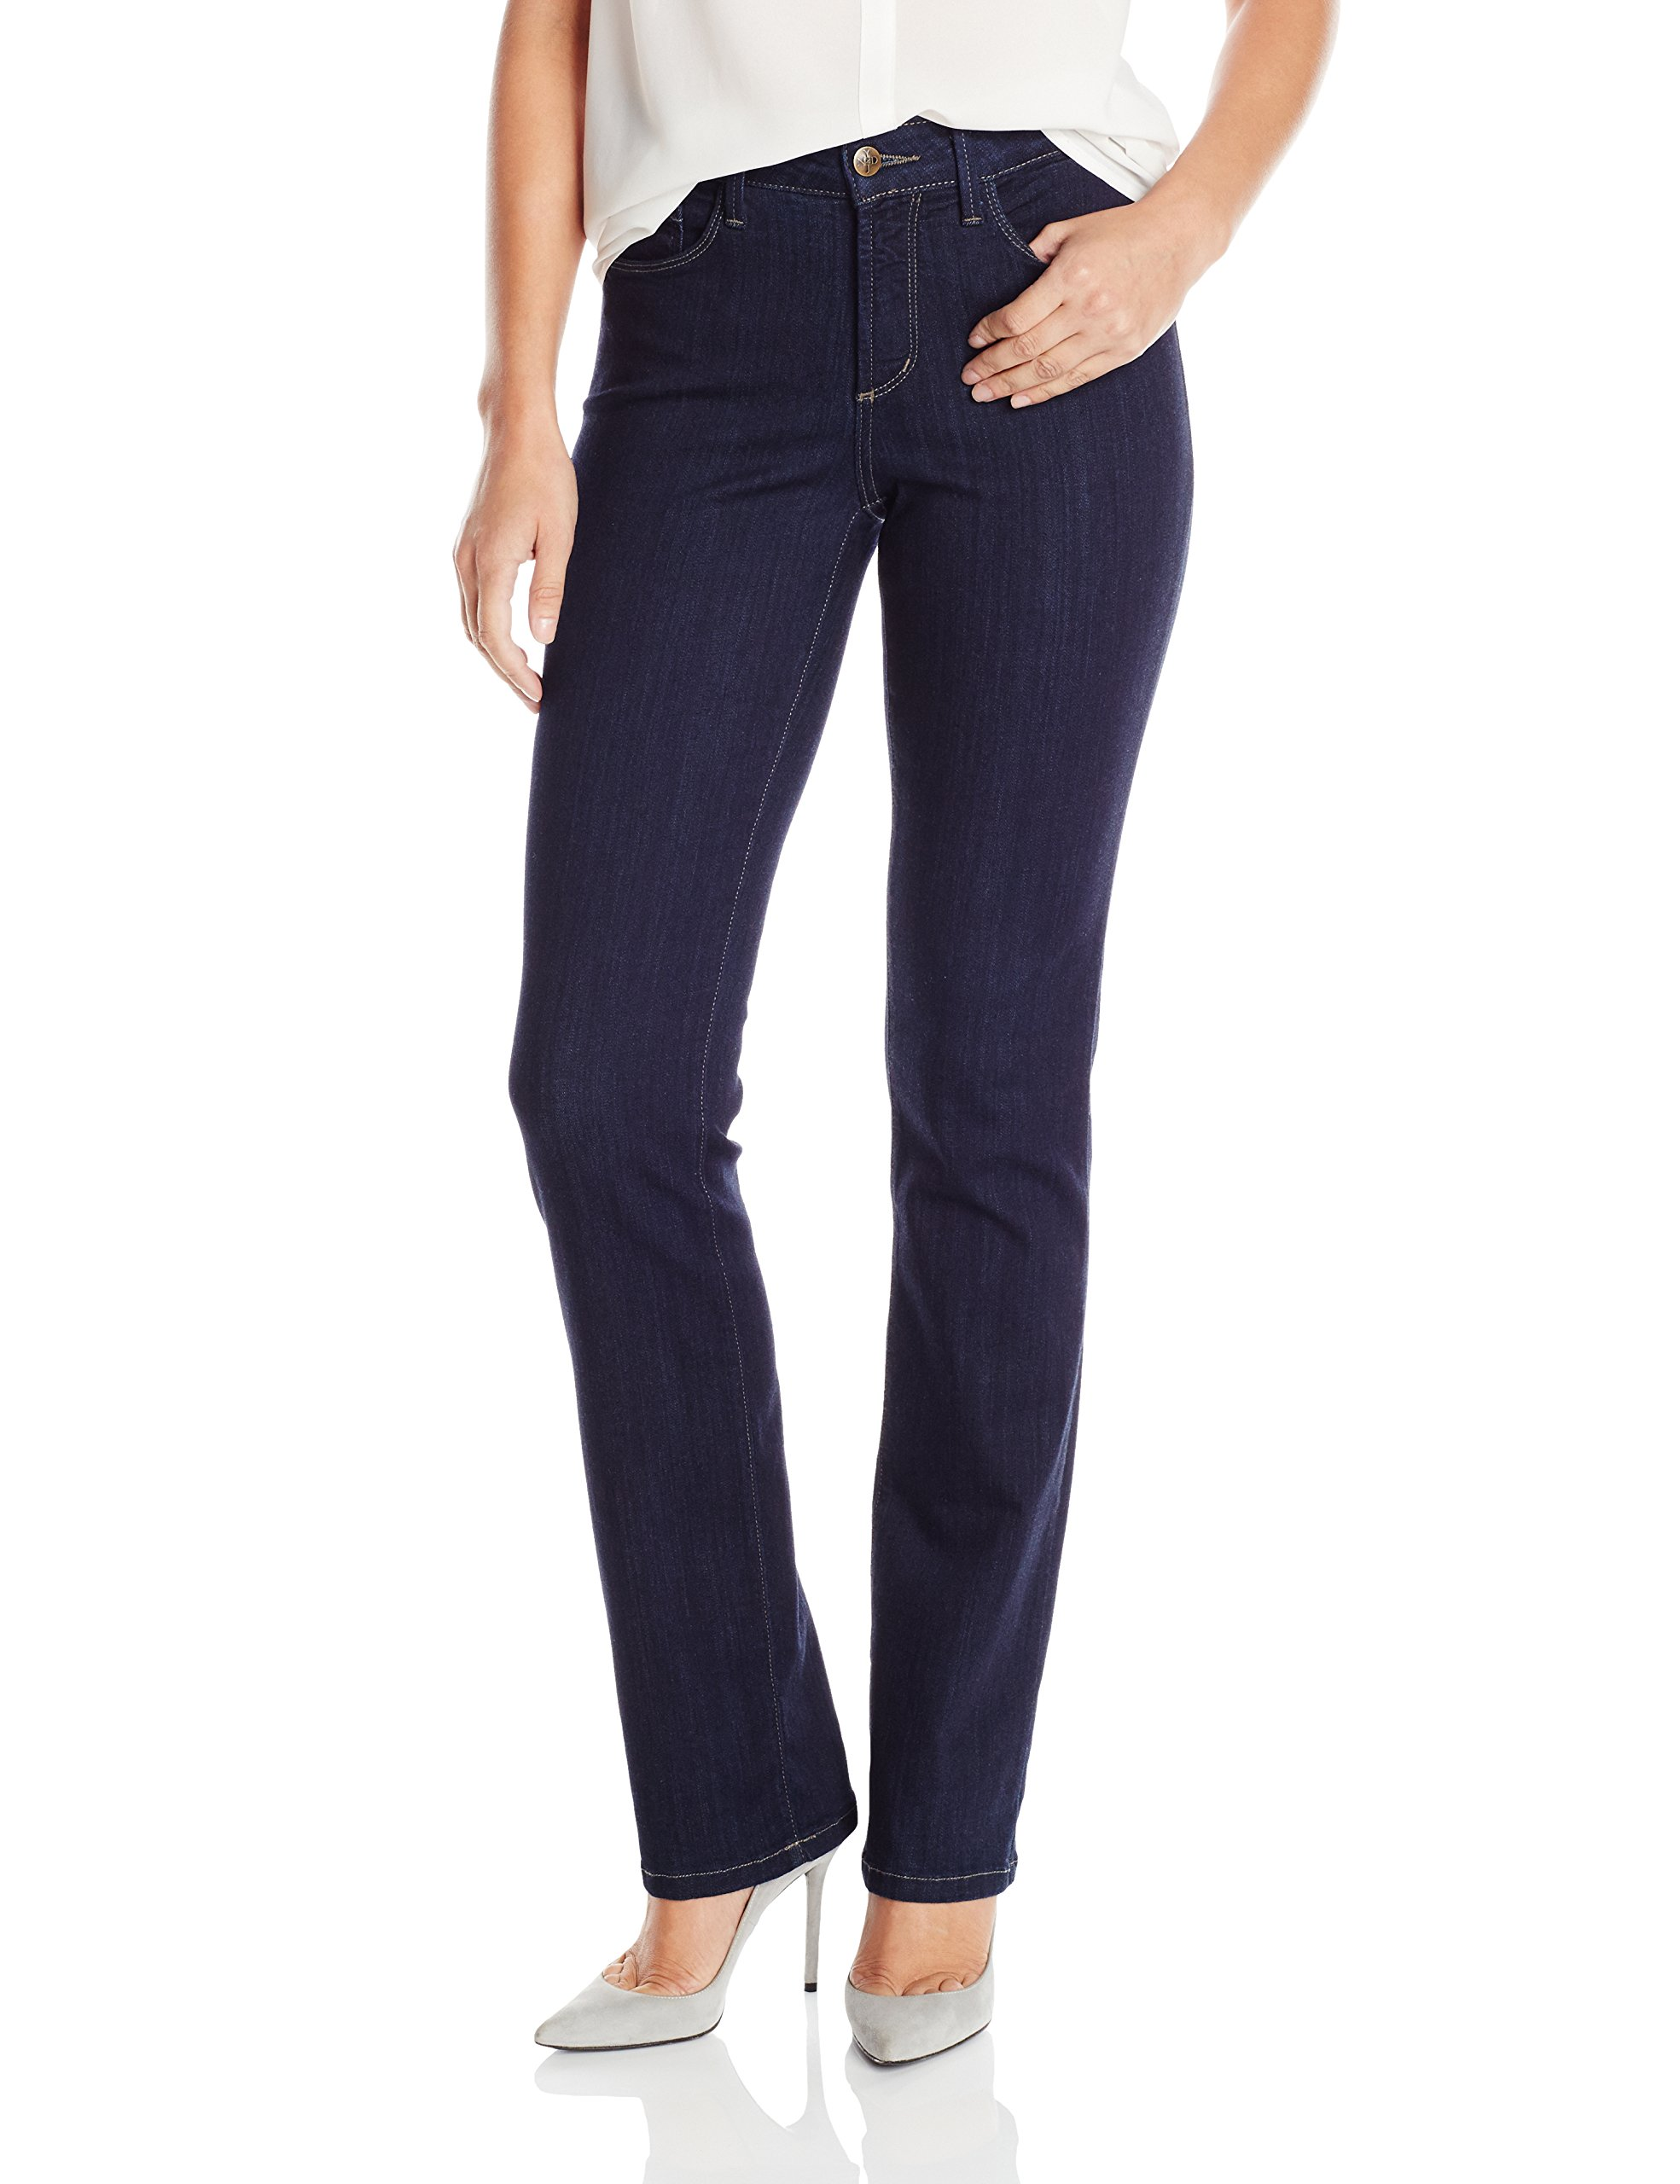 NYDJ Women's Marilyn Straight Leg Jeans In Sure Stretch Denim, Mabel, 14